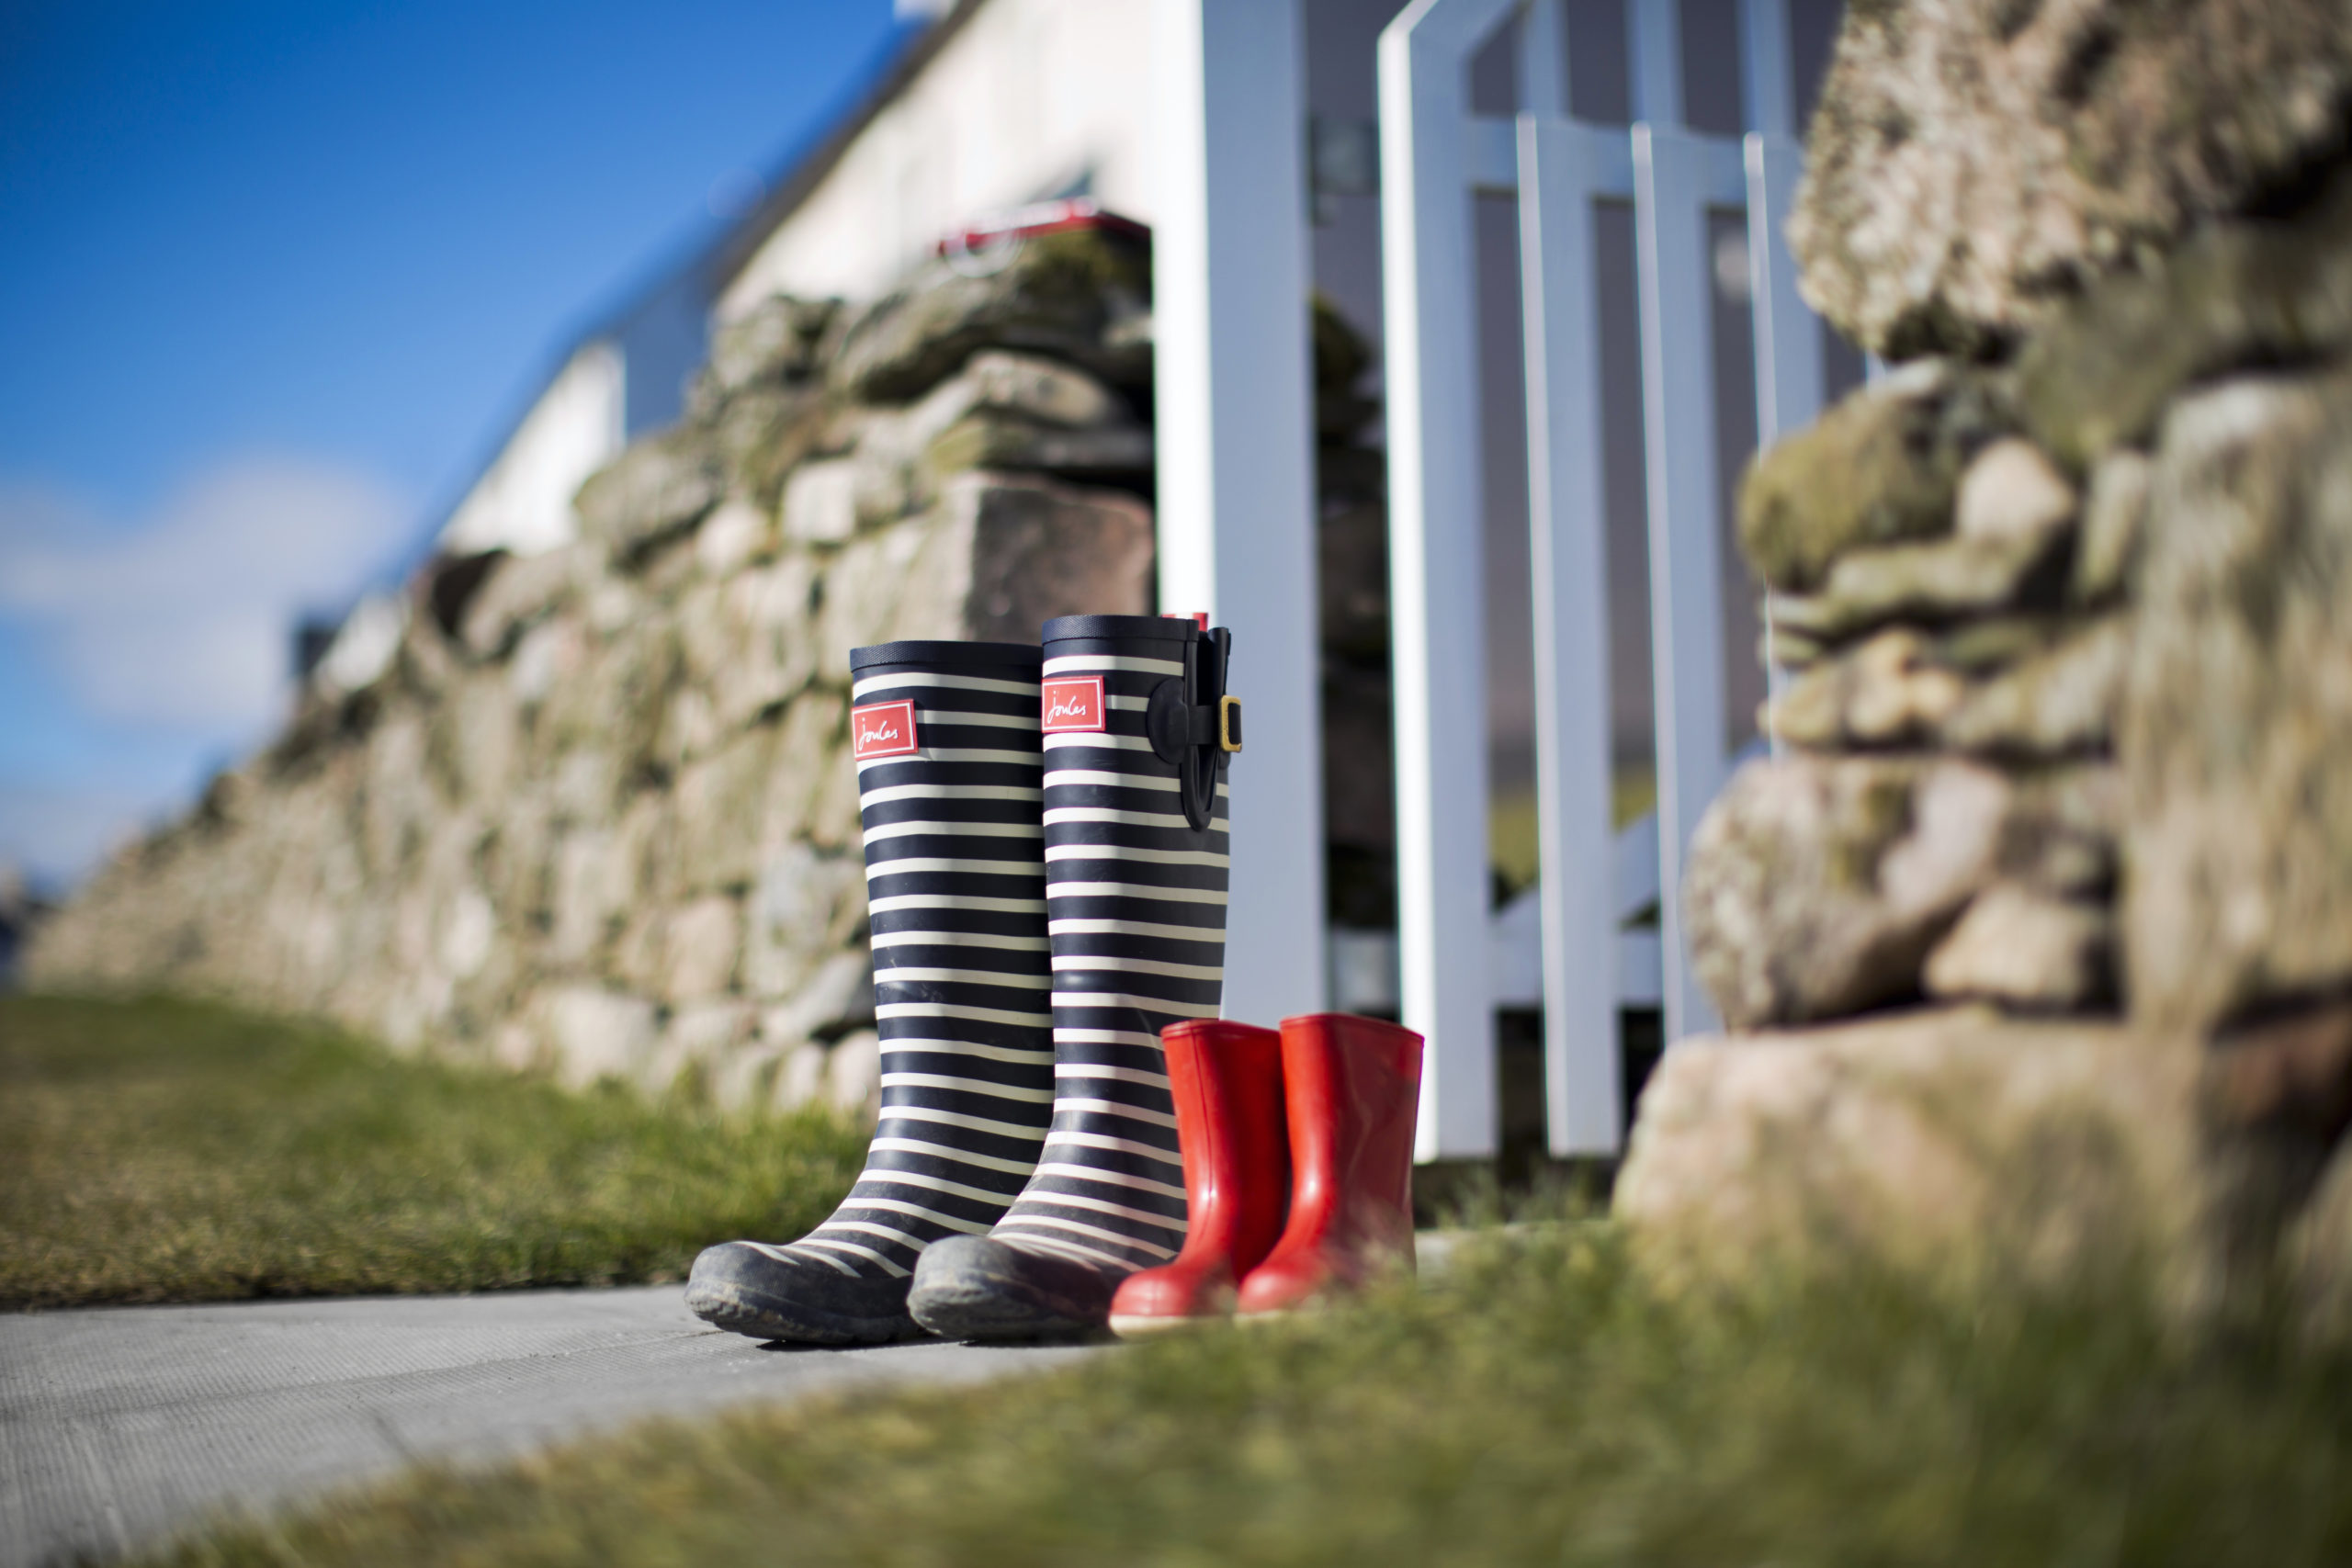 Discover more about life at Chapelton